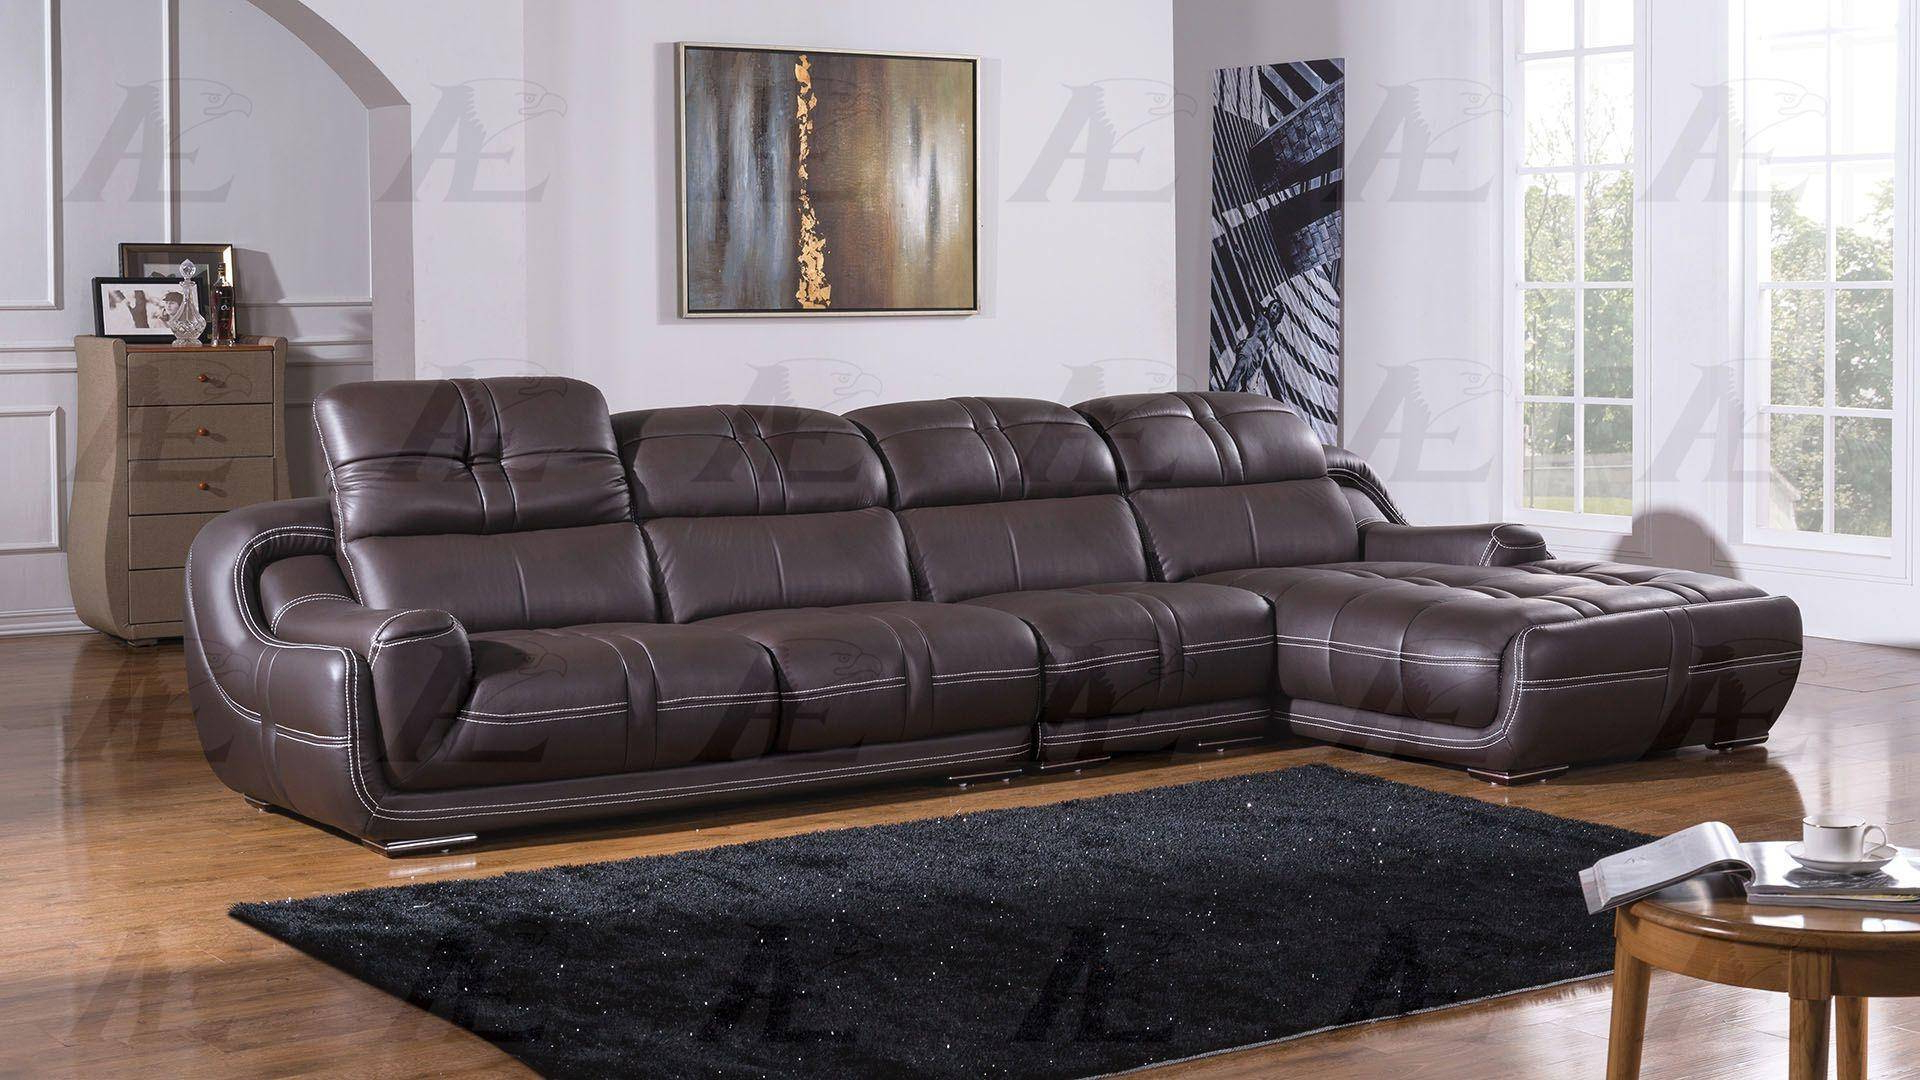 Preferred Hannah Left Sectional Sofas With Regard To Buy American Eagle Ek L201 Db Sectional Sofa 3 Pcs Left (View 1 of 20)